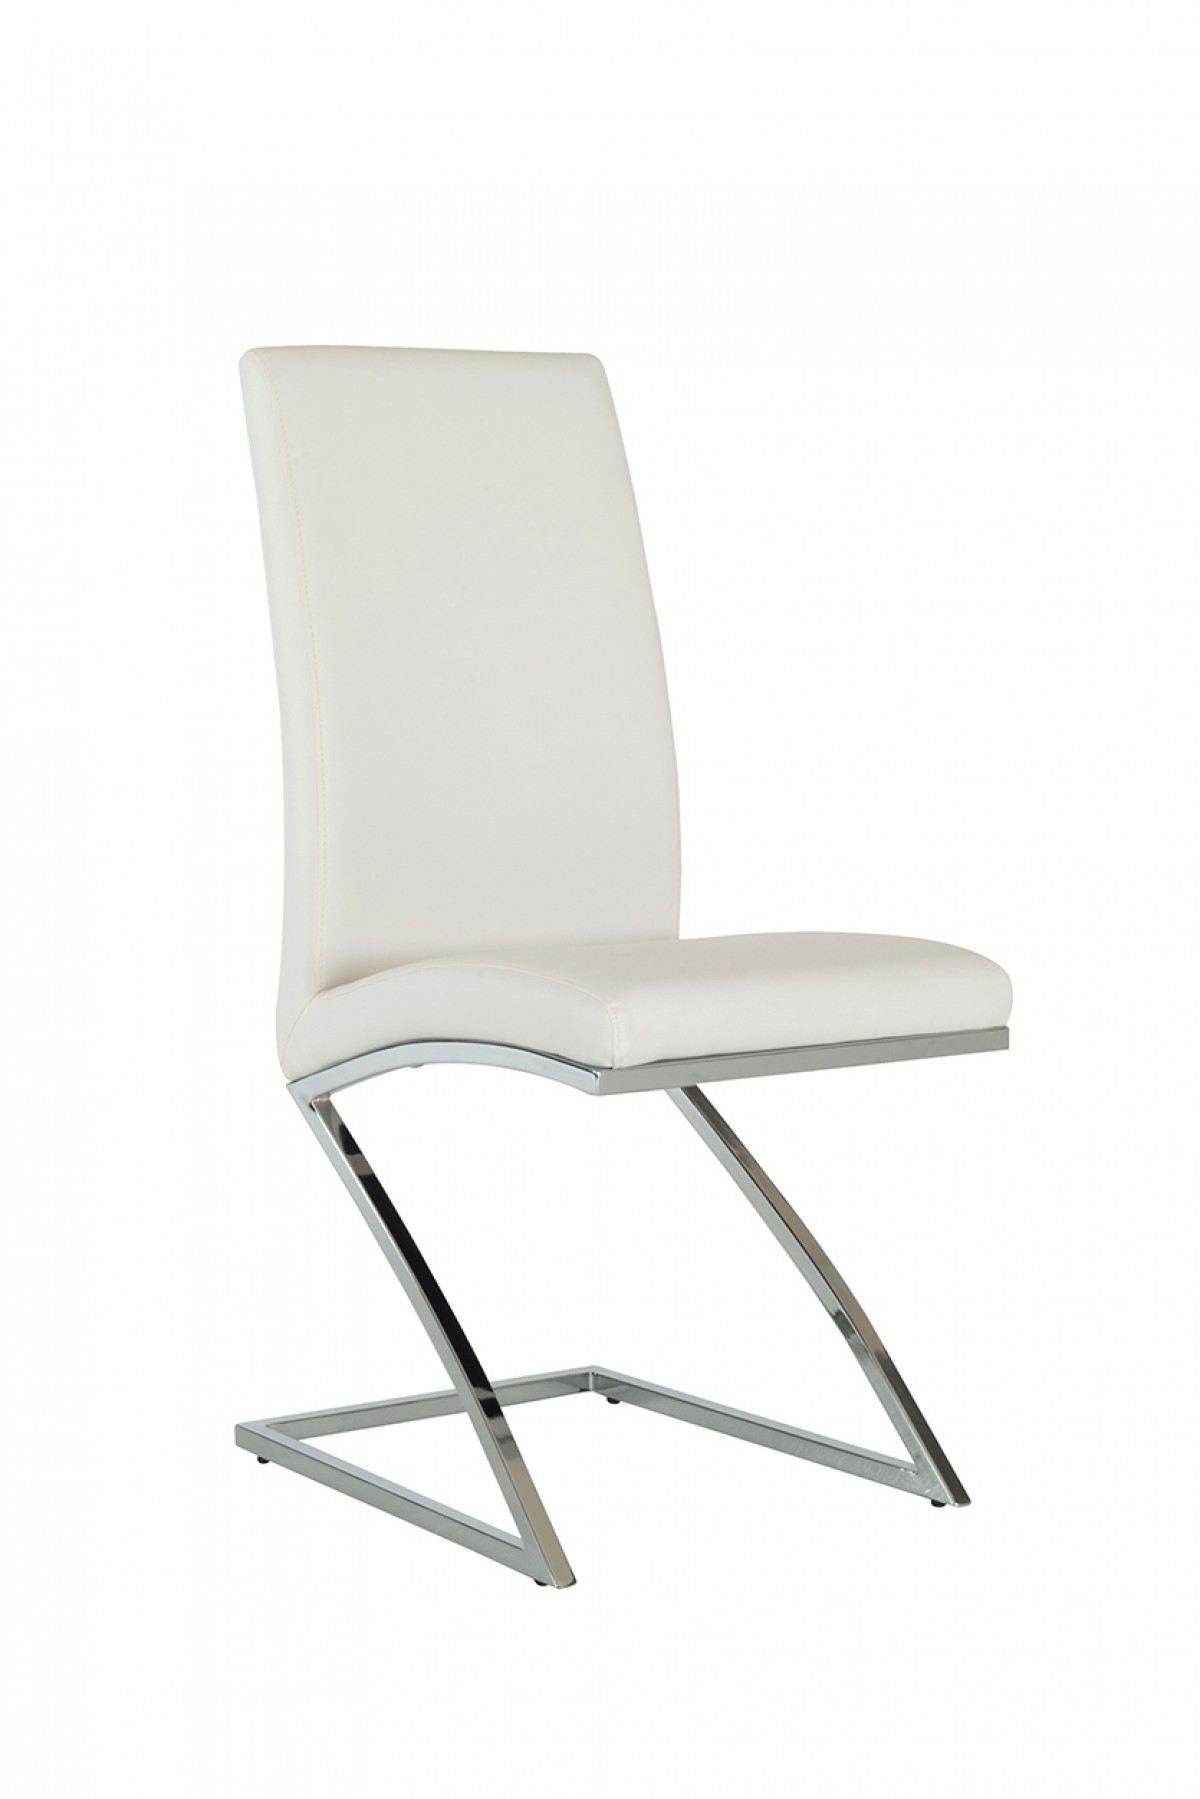 White Modern Chair Angora Modern White Dining Chair Set Of 2